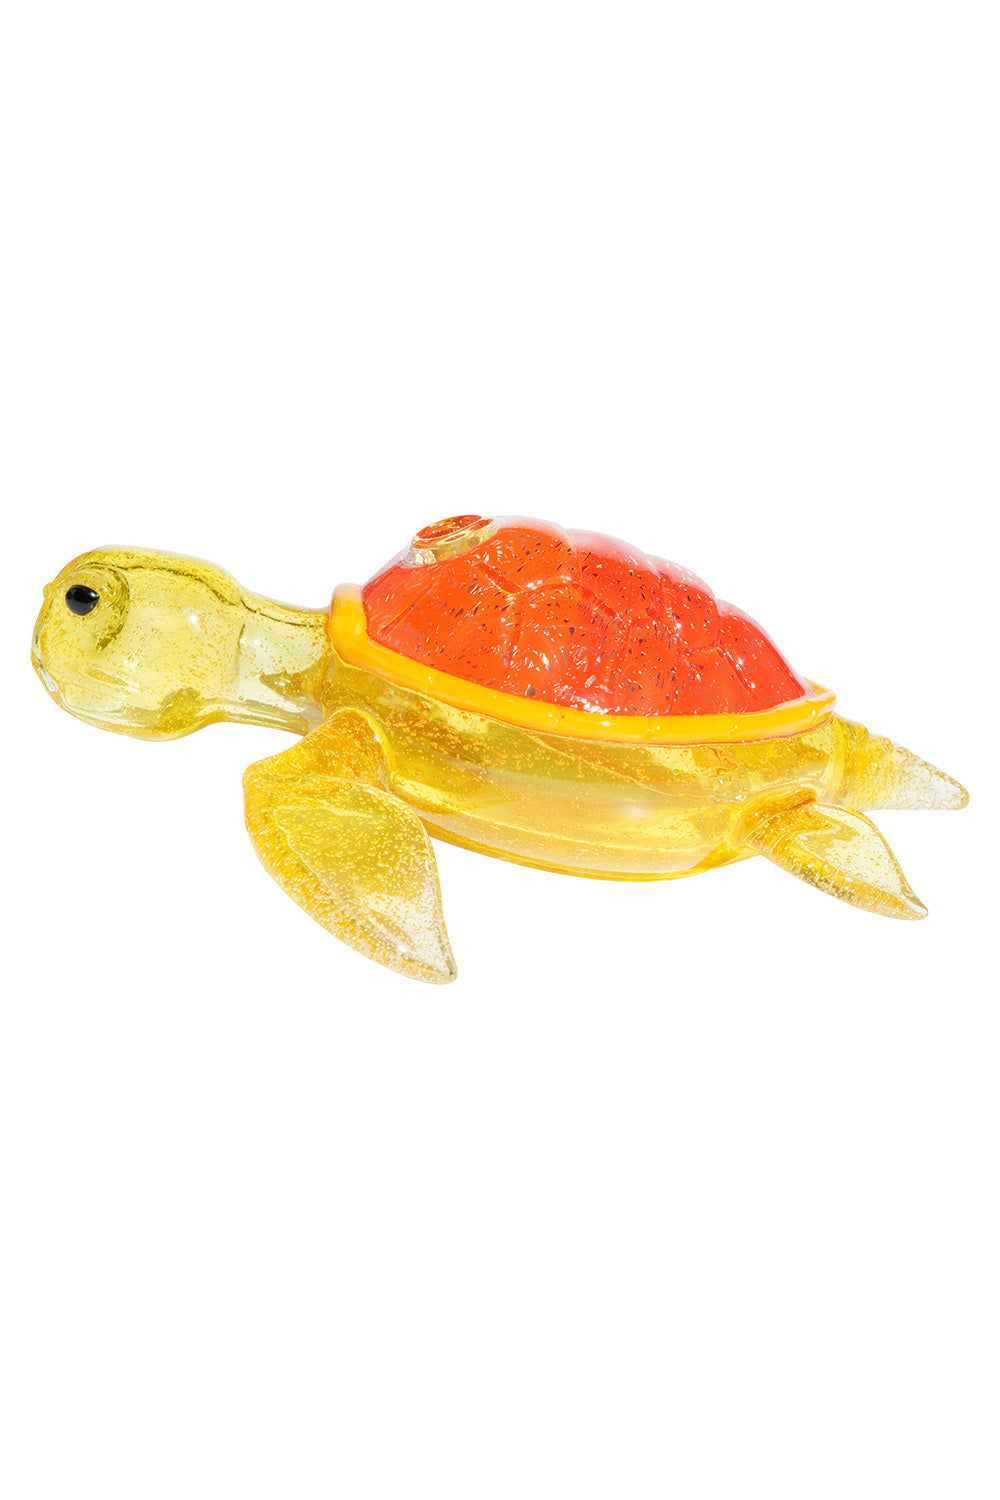 Turtle Time Light Orange Crush Turtle